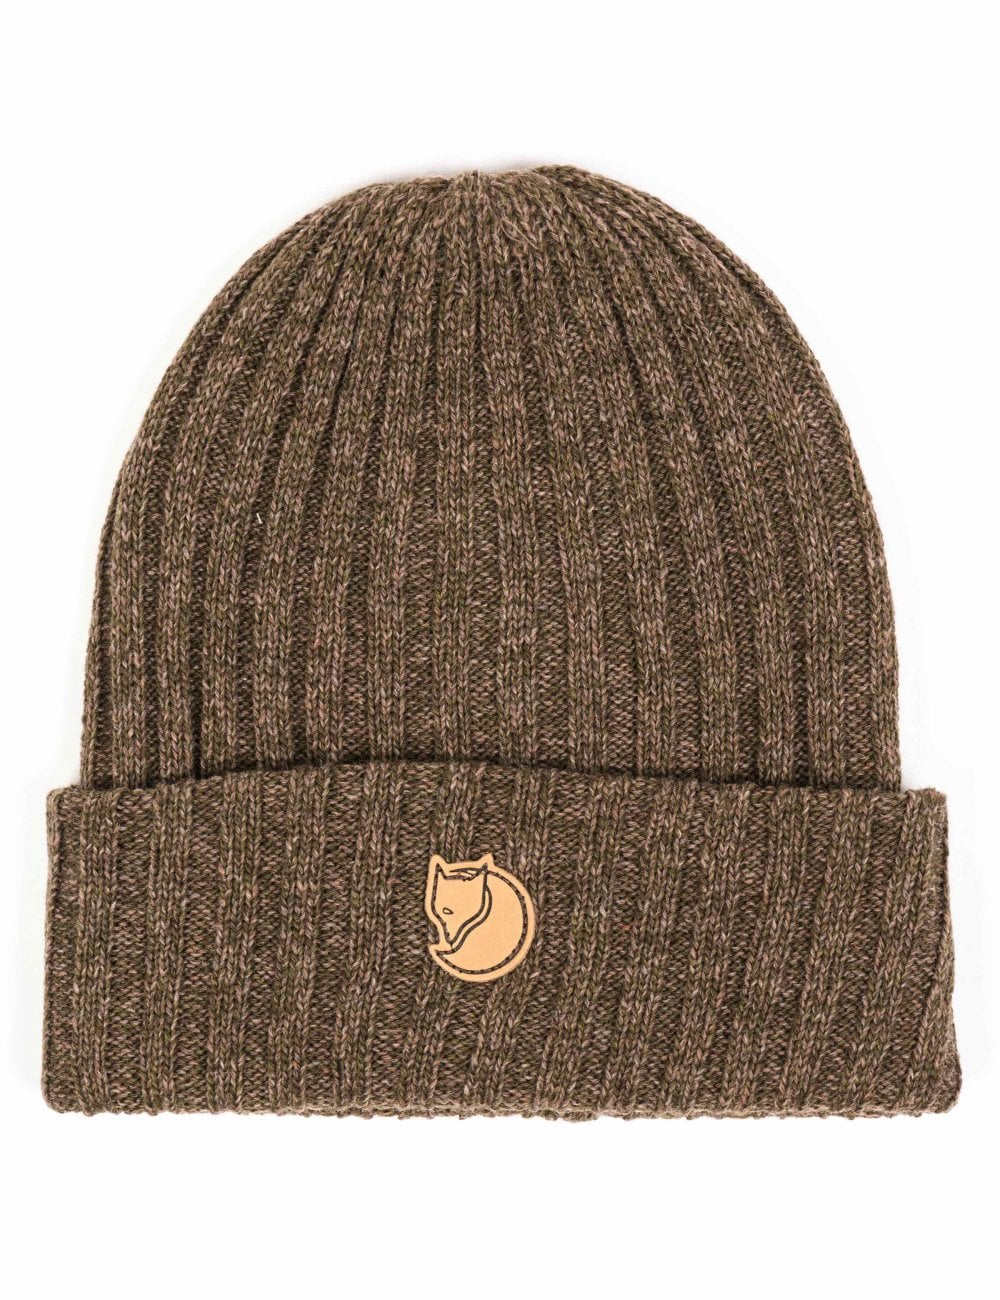 58c91d923aa Fjallraven Byron Beanie Hat - Dark Olive Taupe - Accessories from ...